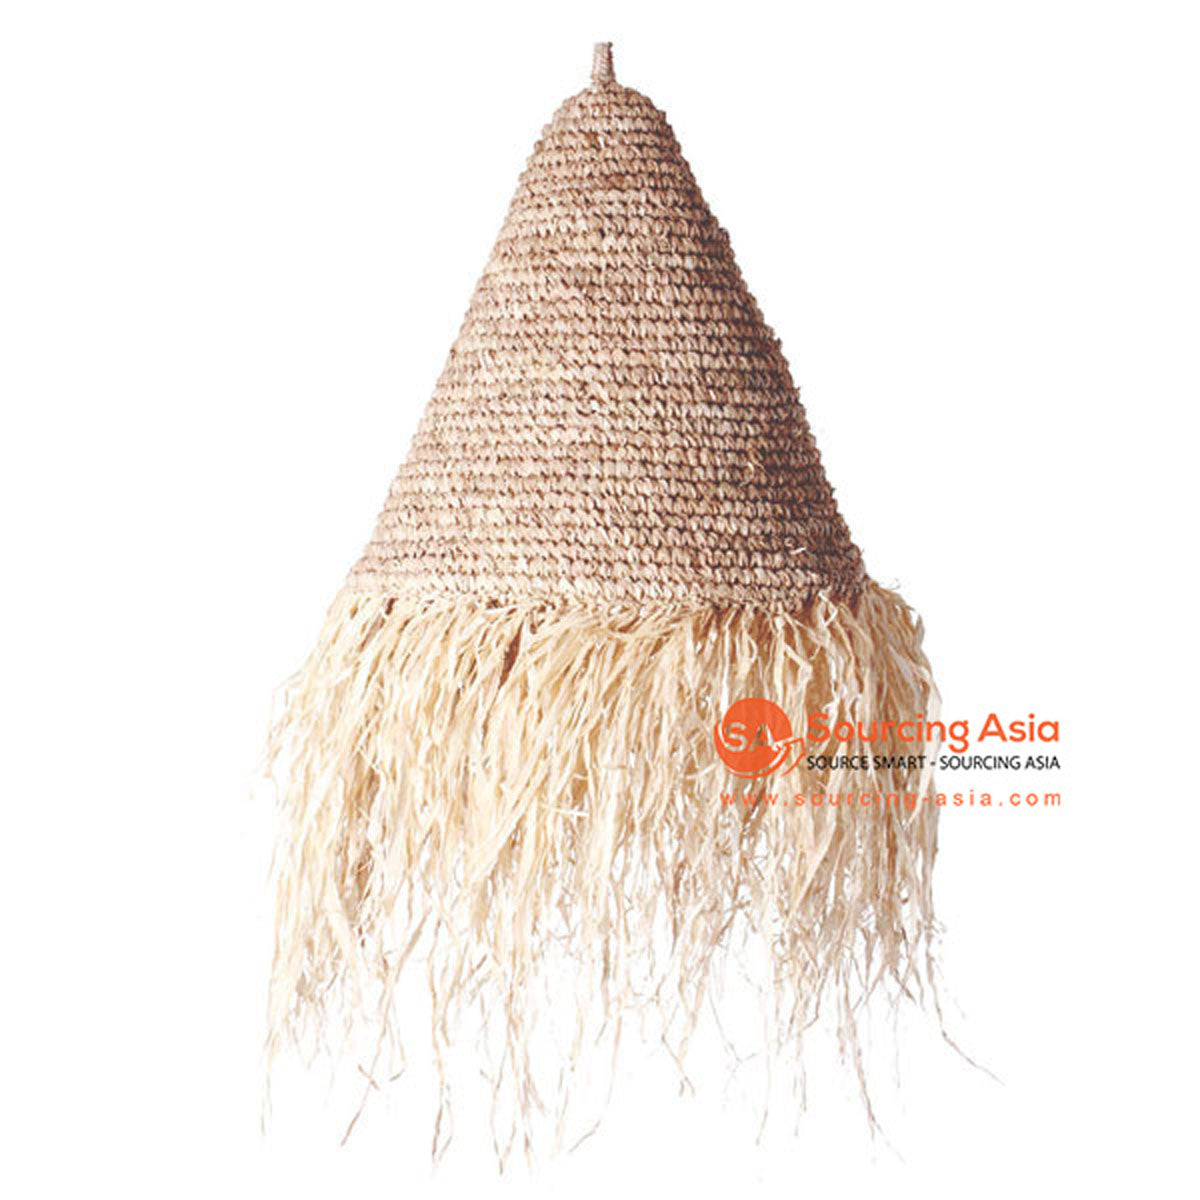 SHL063-7 NATURAL LEAF LIGHTSHADE